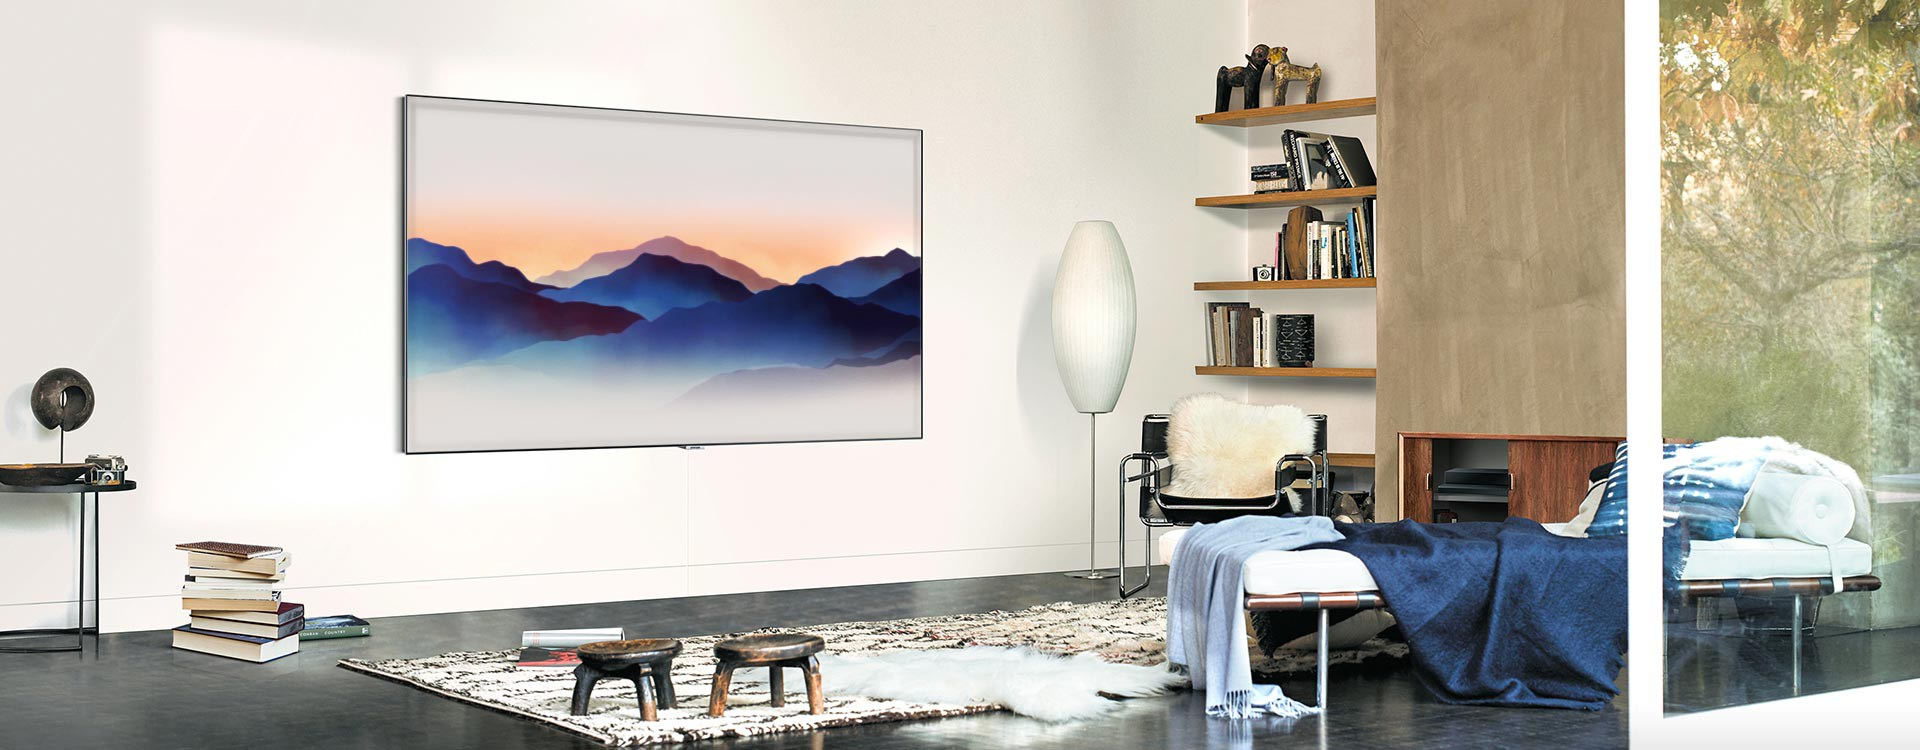 2018 Qled Q Style See The Picture Not The Tv Samsung Us